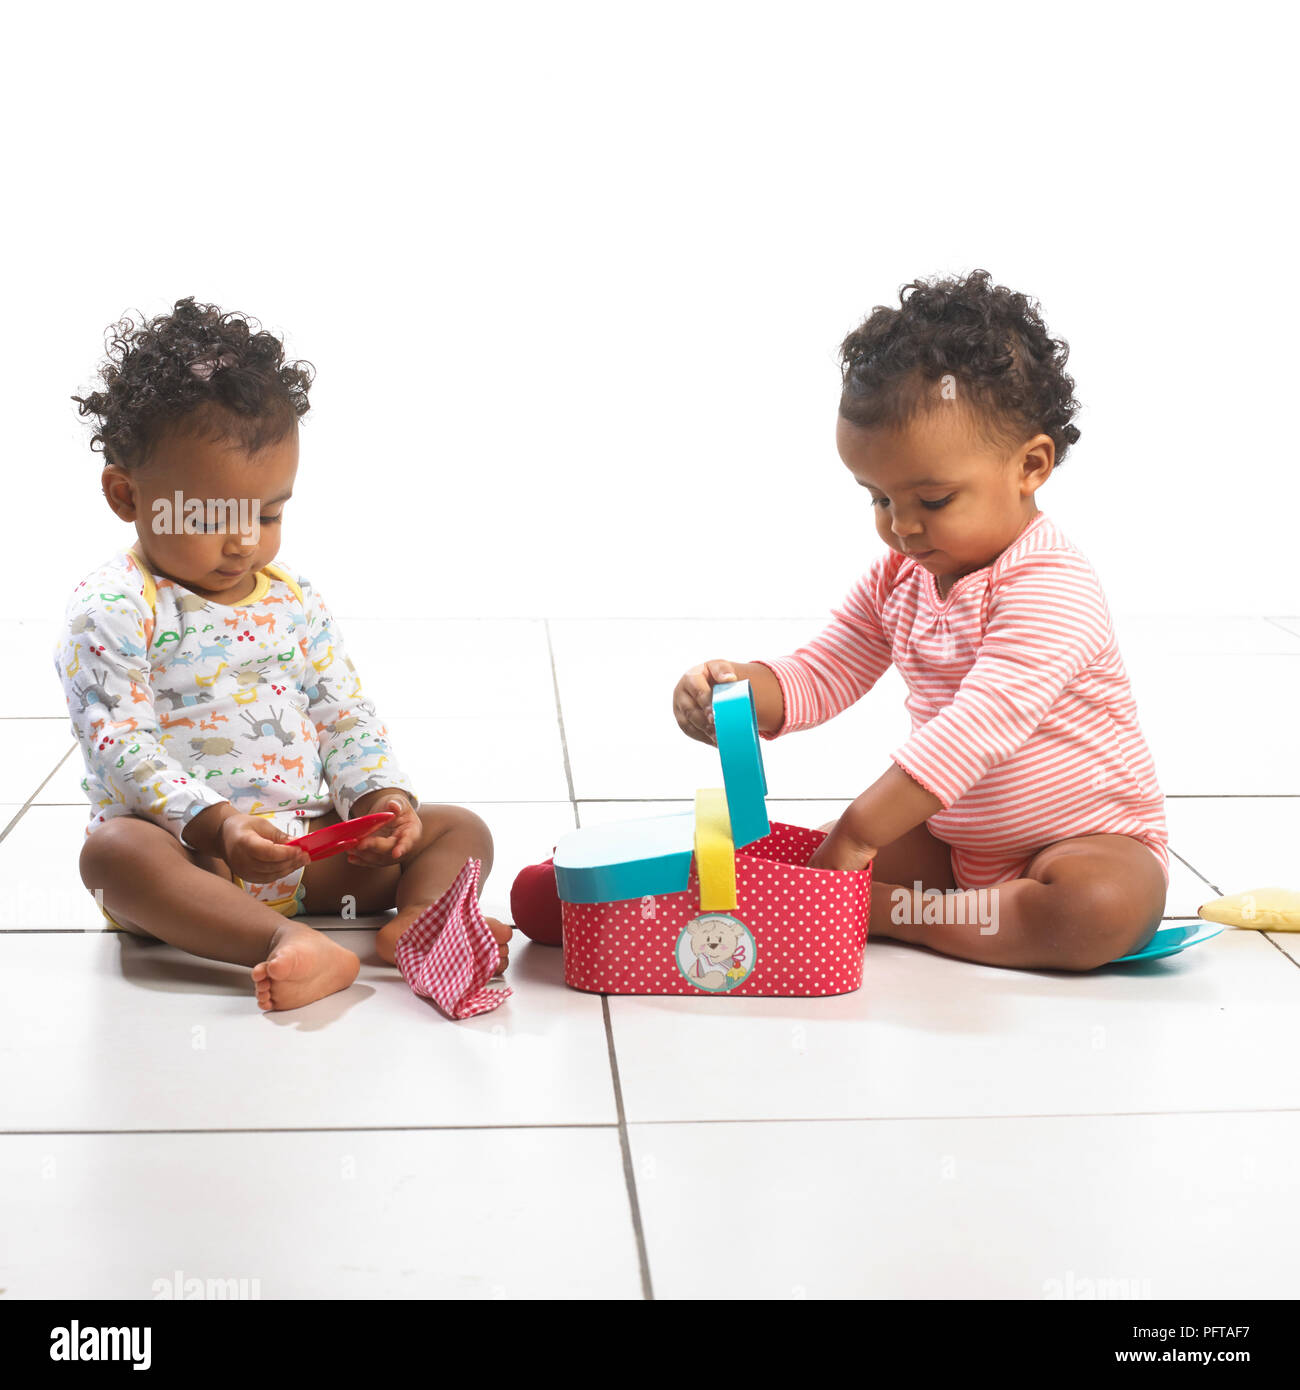 Twin girl and boy sitting playing with toy picnic basket, 18 months - Stock Image